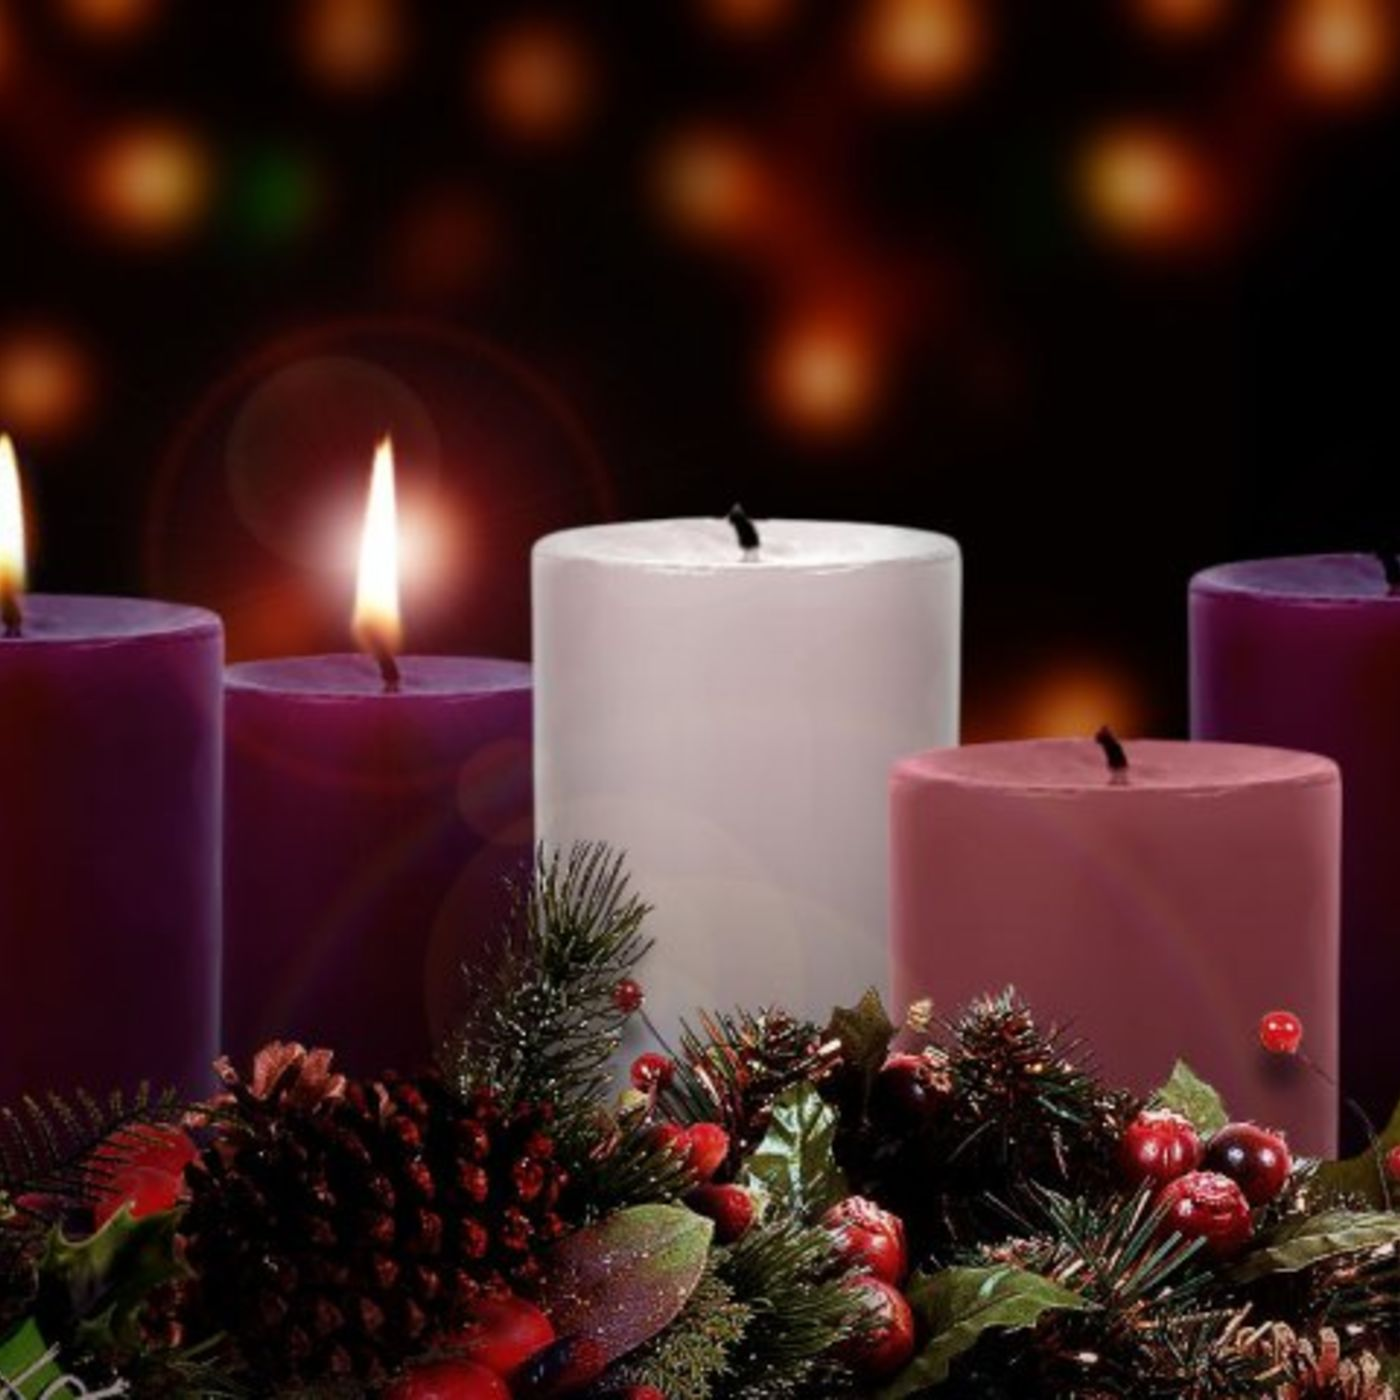 Evening Service 9th December 2018, Pause for Advent